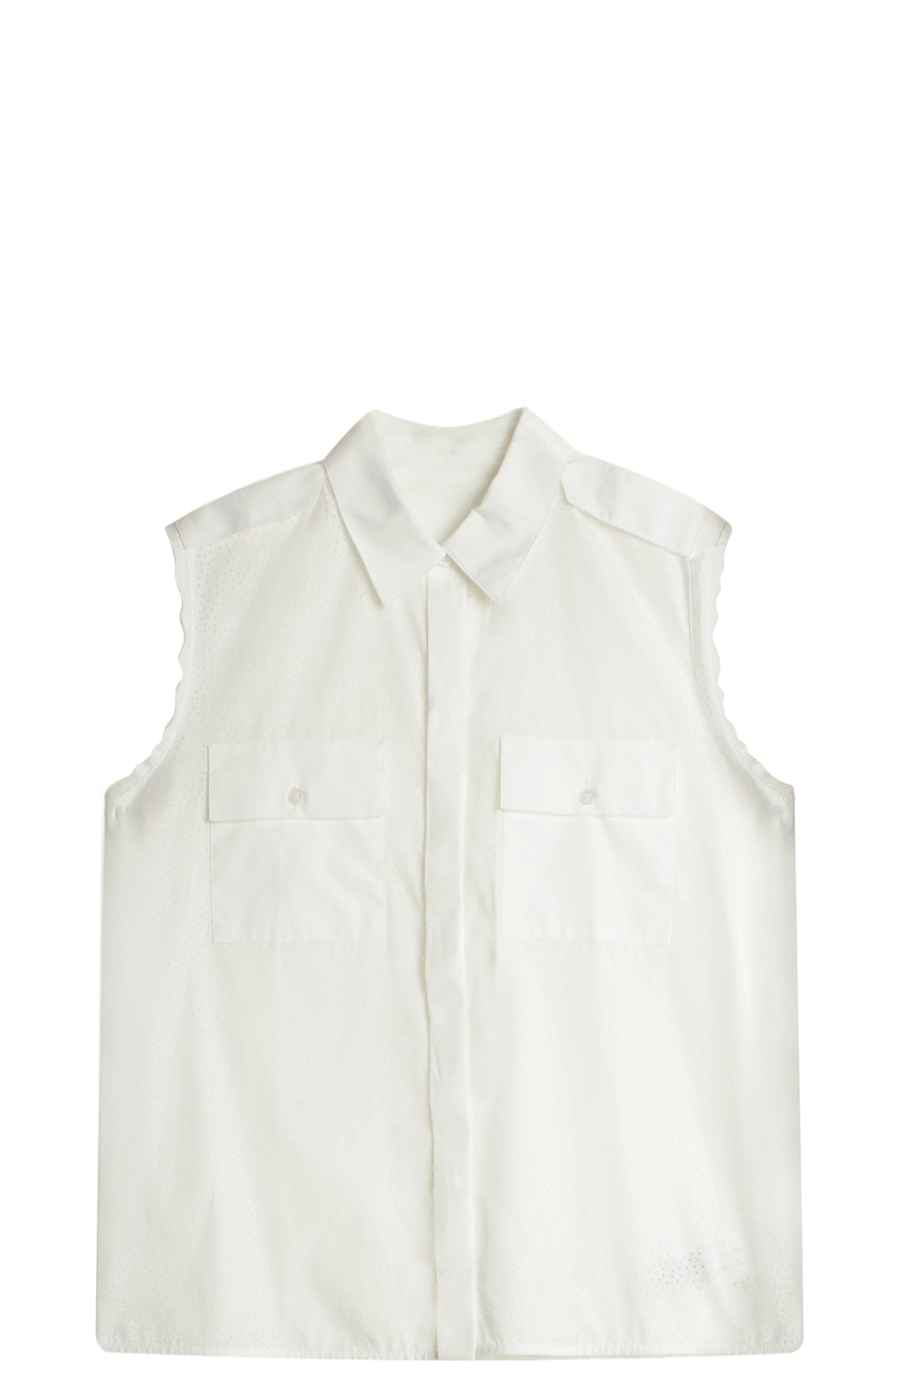 Victoria Beckham Perforated Shirt In White Lyst